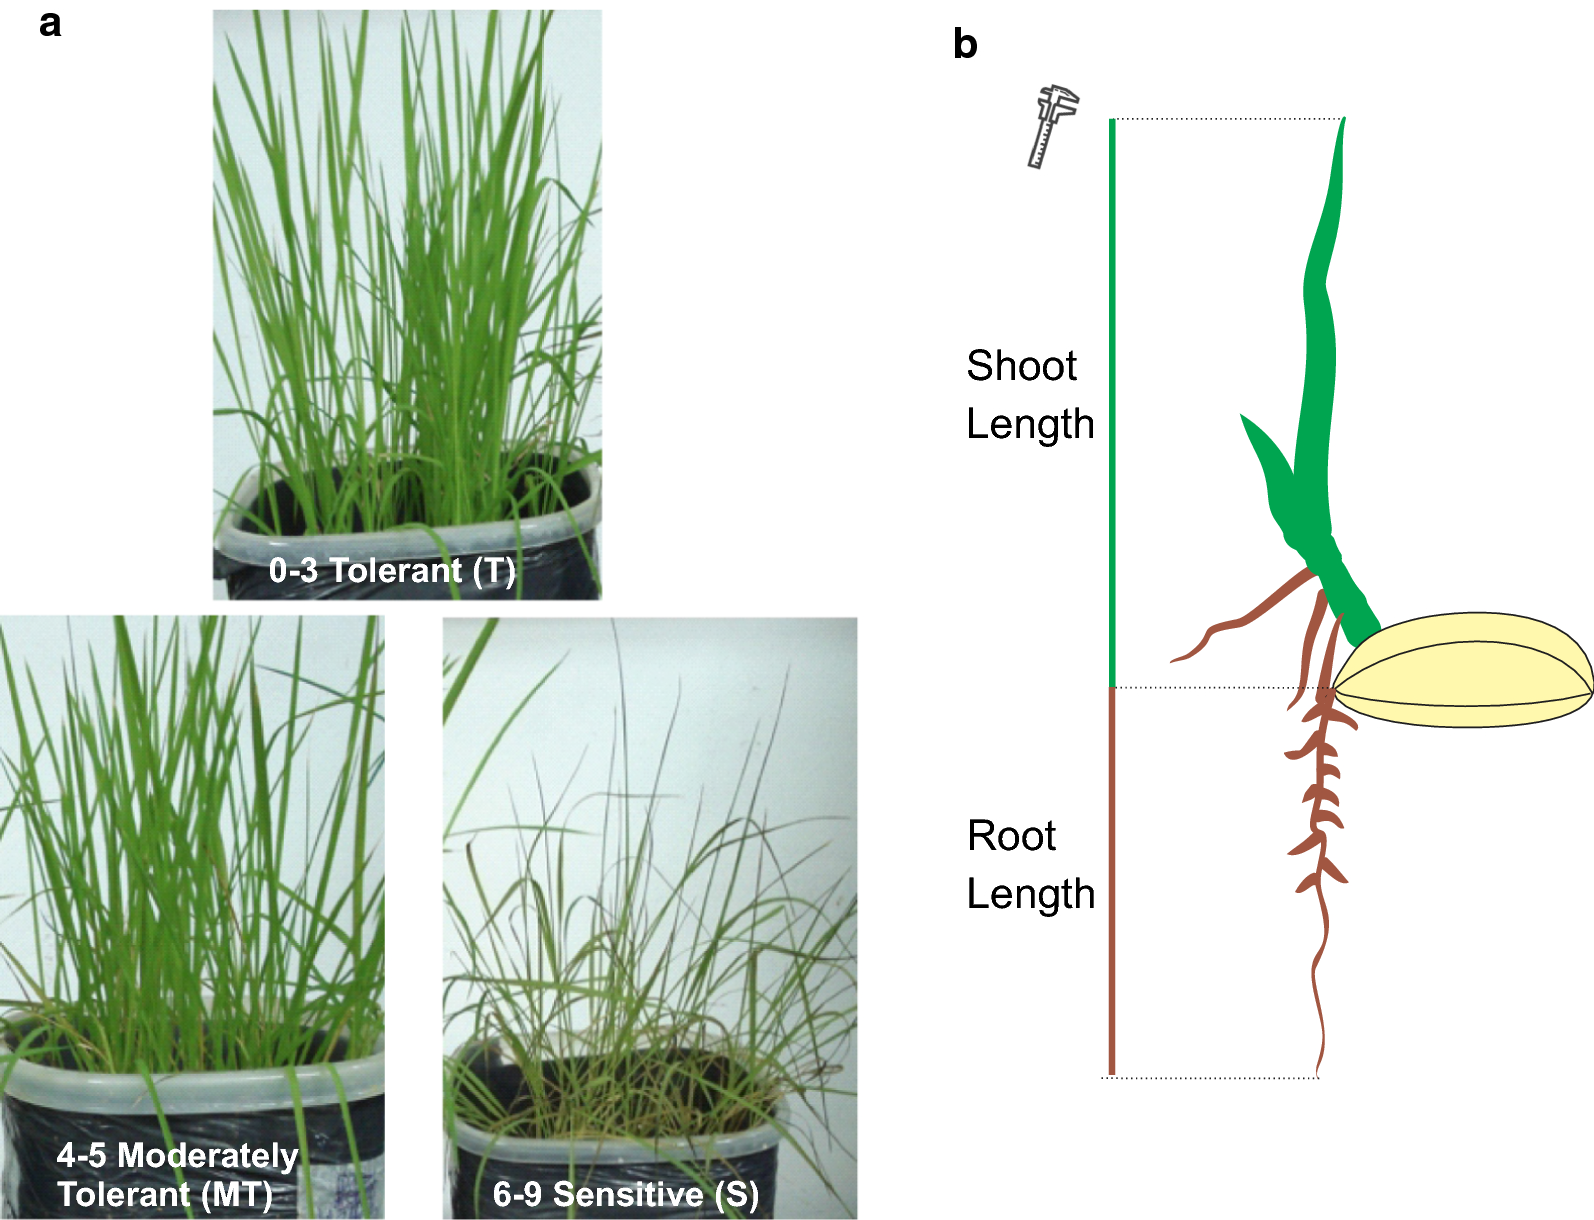 Iron tolerance in rice: an efficient method for performing